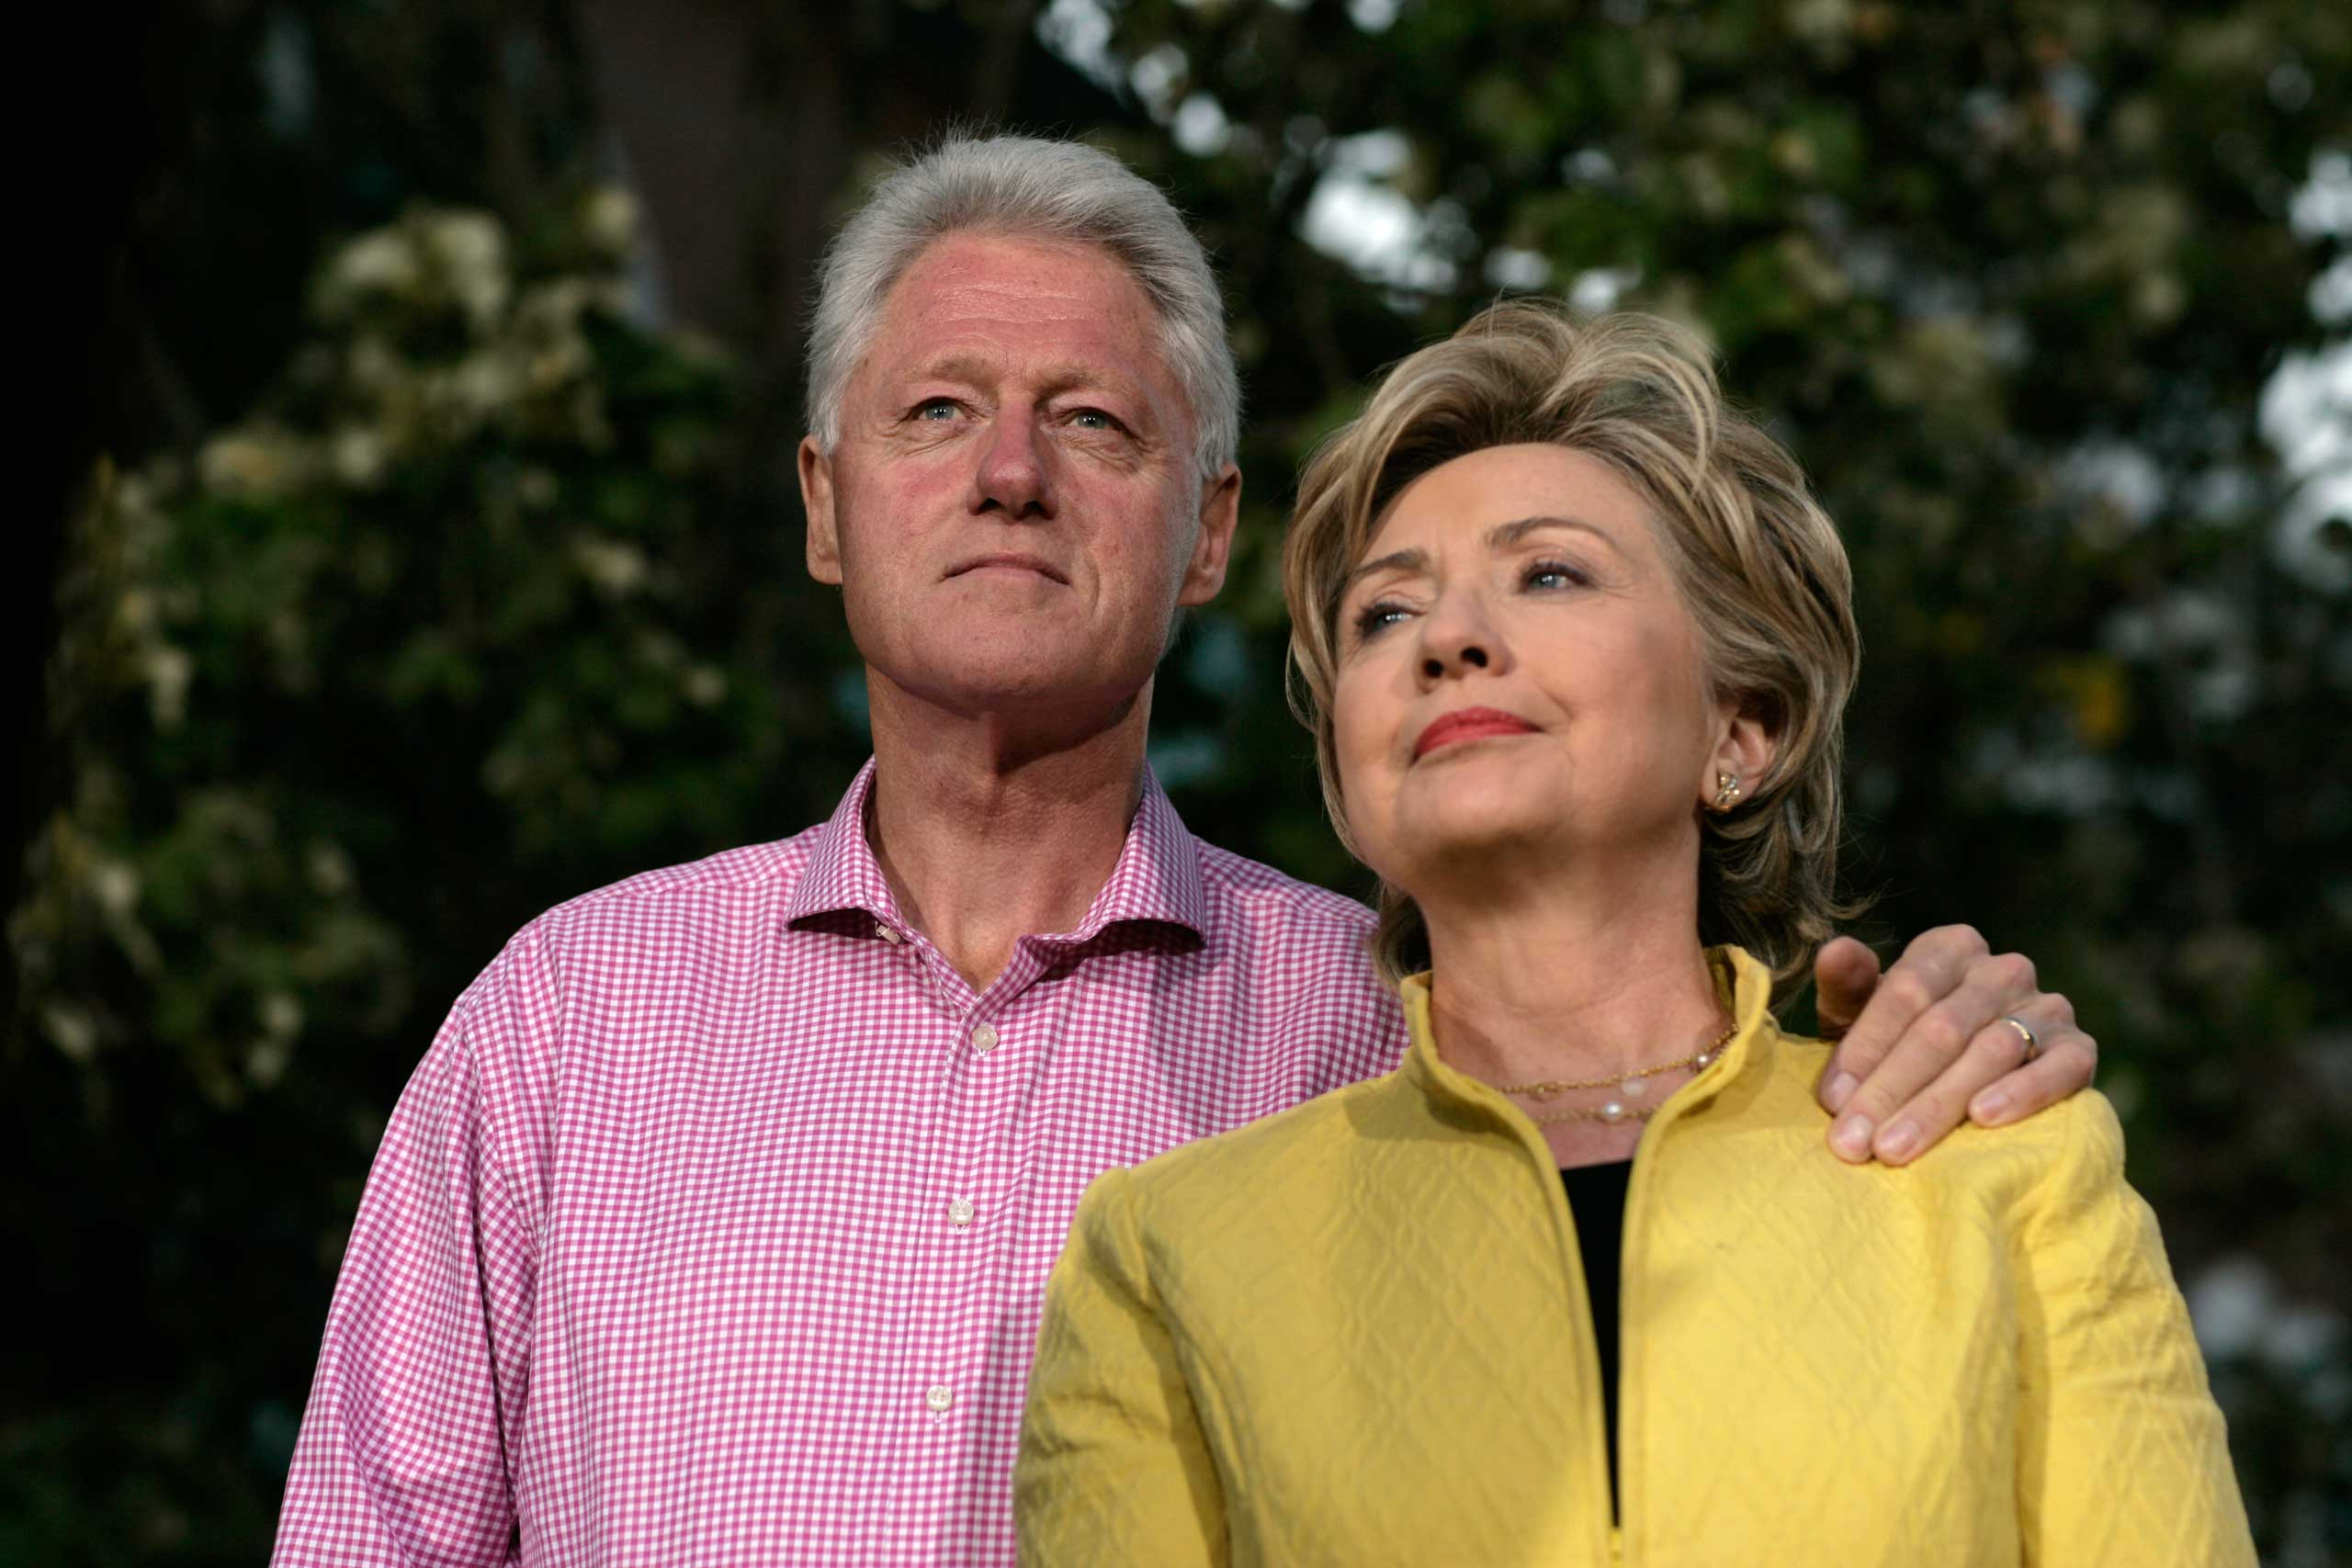 The Clintons started their political dynasty in Arkansas in 1976, when Bill was elected Attorney General. He went on to win the governors seat and, in 1992, the Presidency. After leaving the White House, Hillary served as a Senator from New York and Secretary of State. She's widely expected to make her own White House bid in 2016.